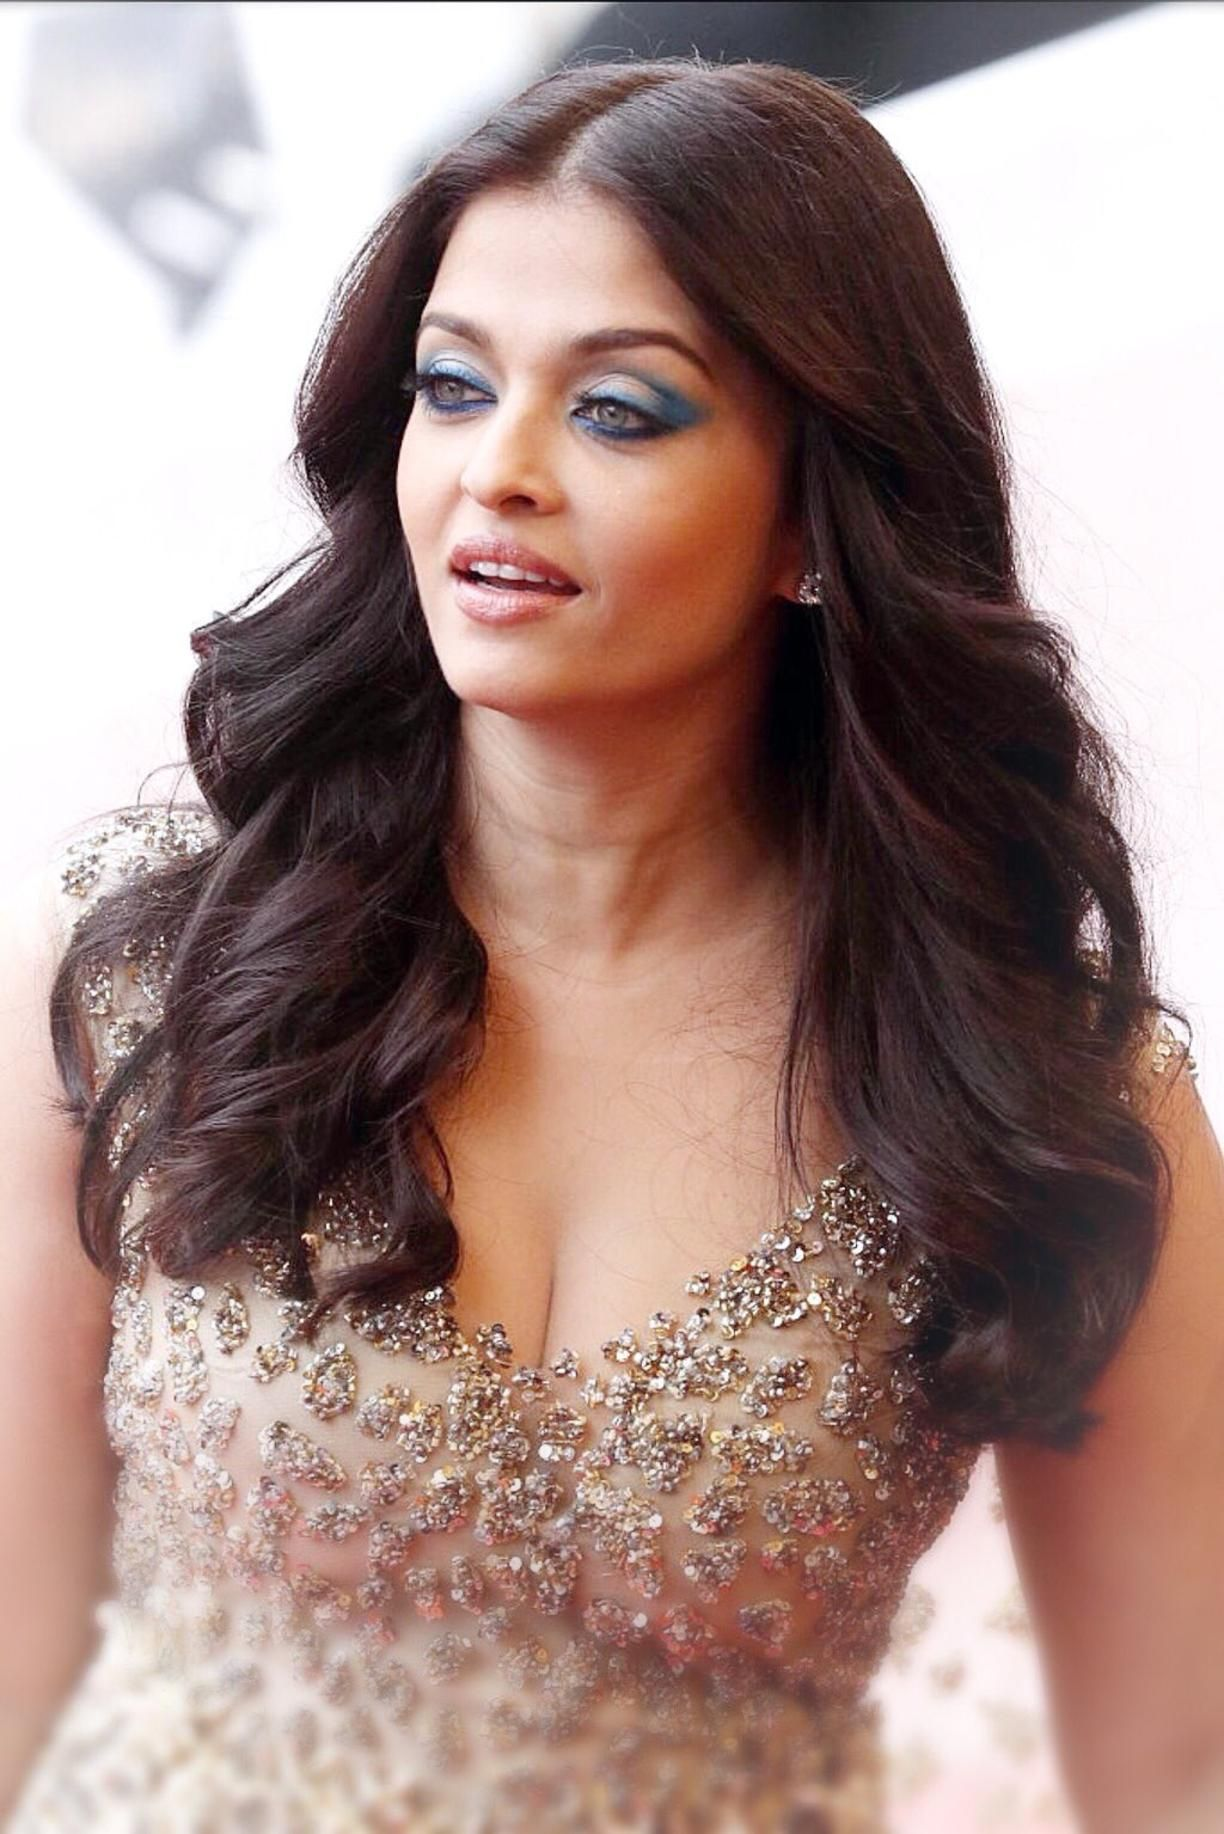 Hot and sexy pics of aishwarya rai